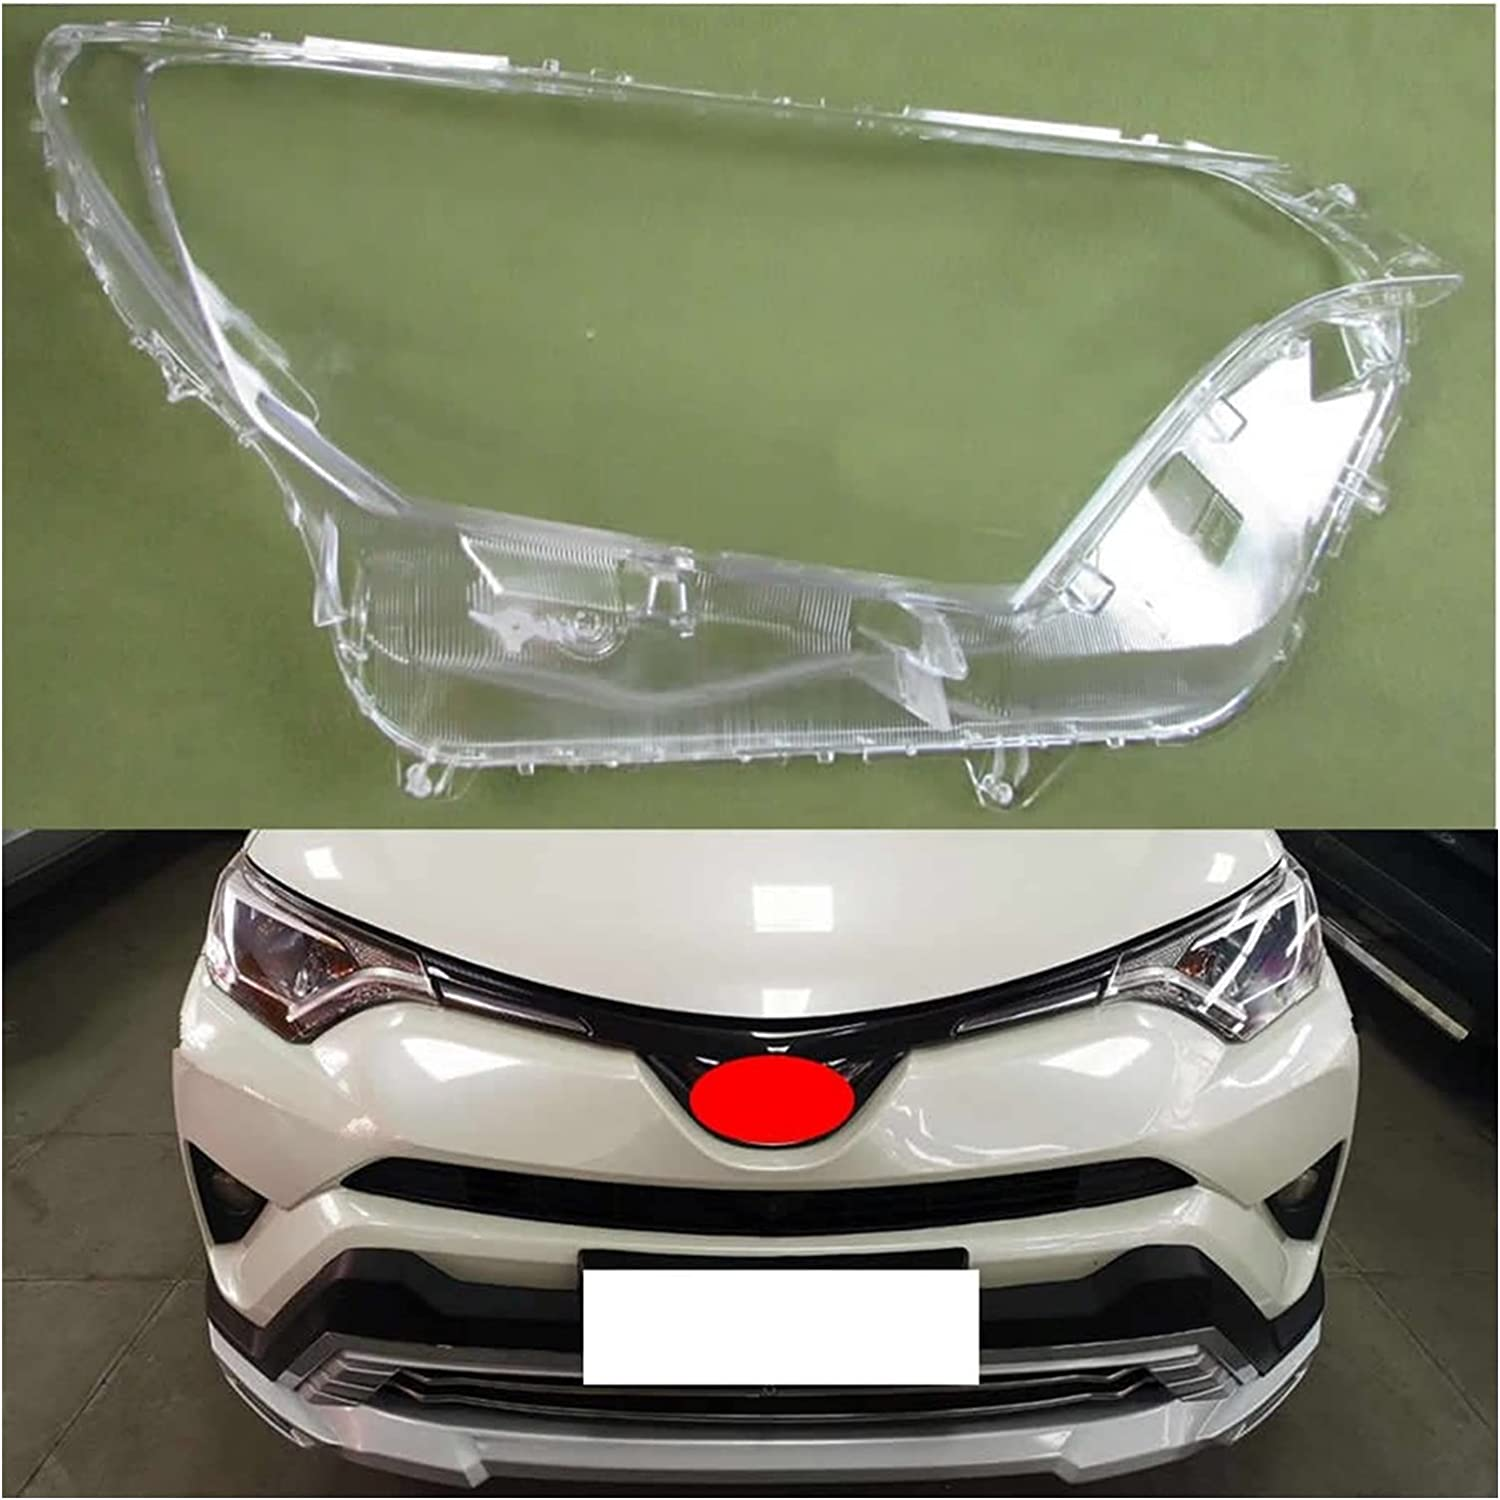 WRDD Transparent Automotive Ranking integrated 1st place Headlight Headlamps Covers Latest item Cov Shell